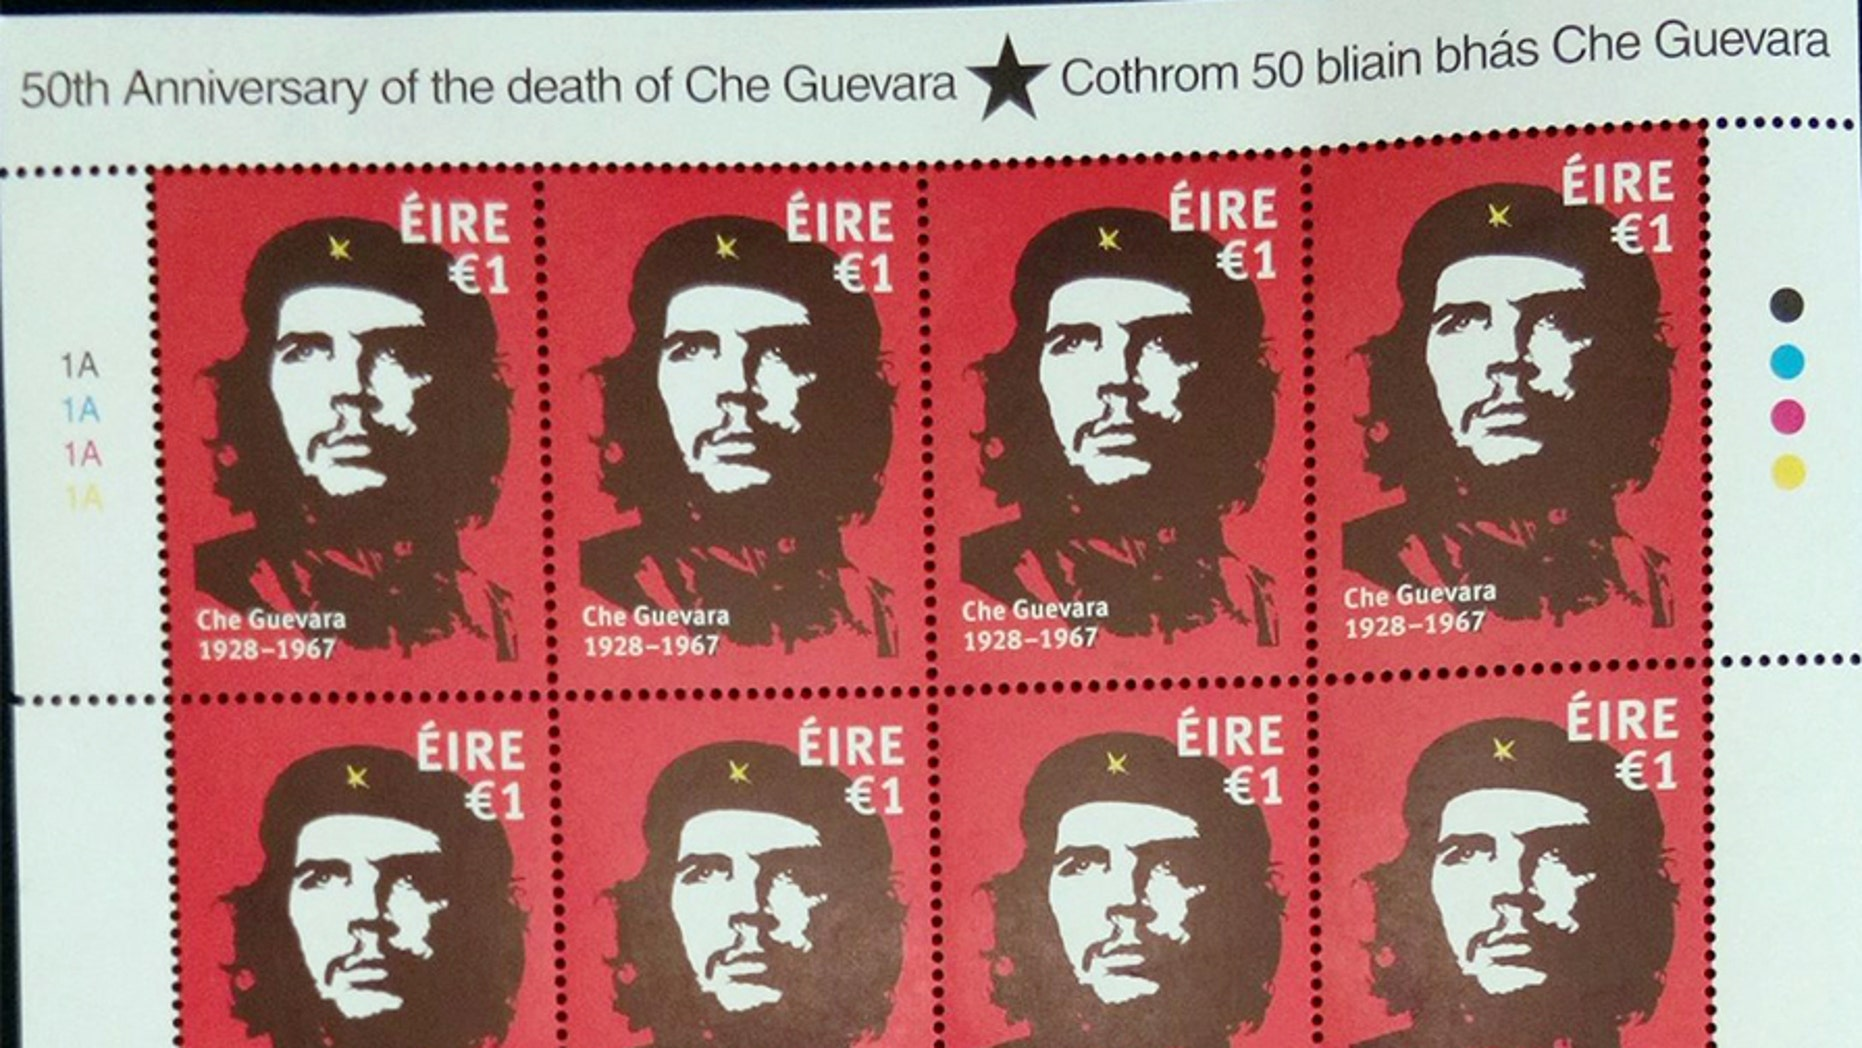 Ireland's Post Office chose the 50th anniversary of Che Guevara's death to issue a special stamp featuring the famous image of 'Che' by Dublin artist Jim Fitzpatrick.